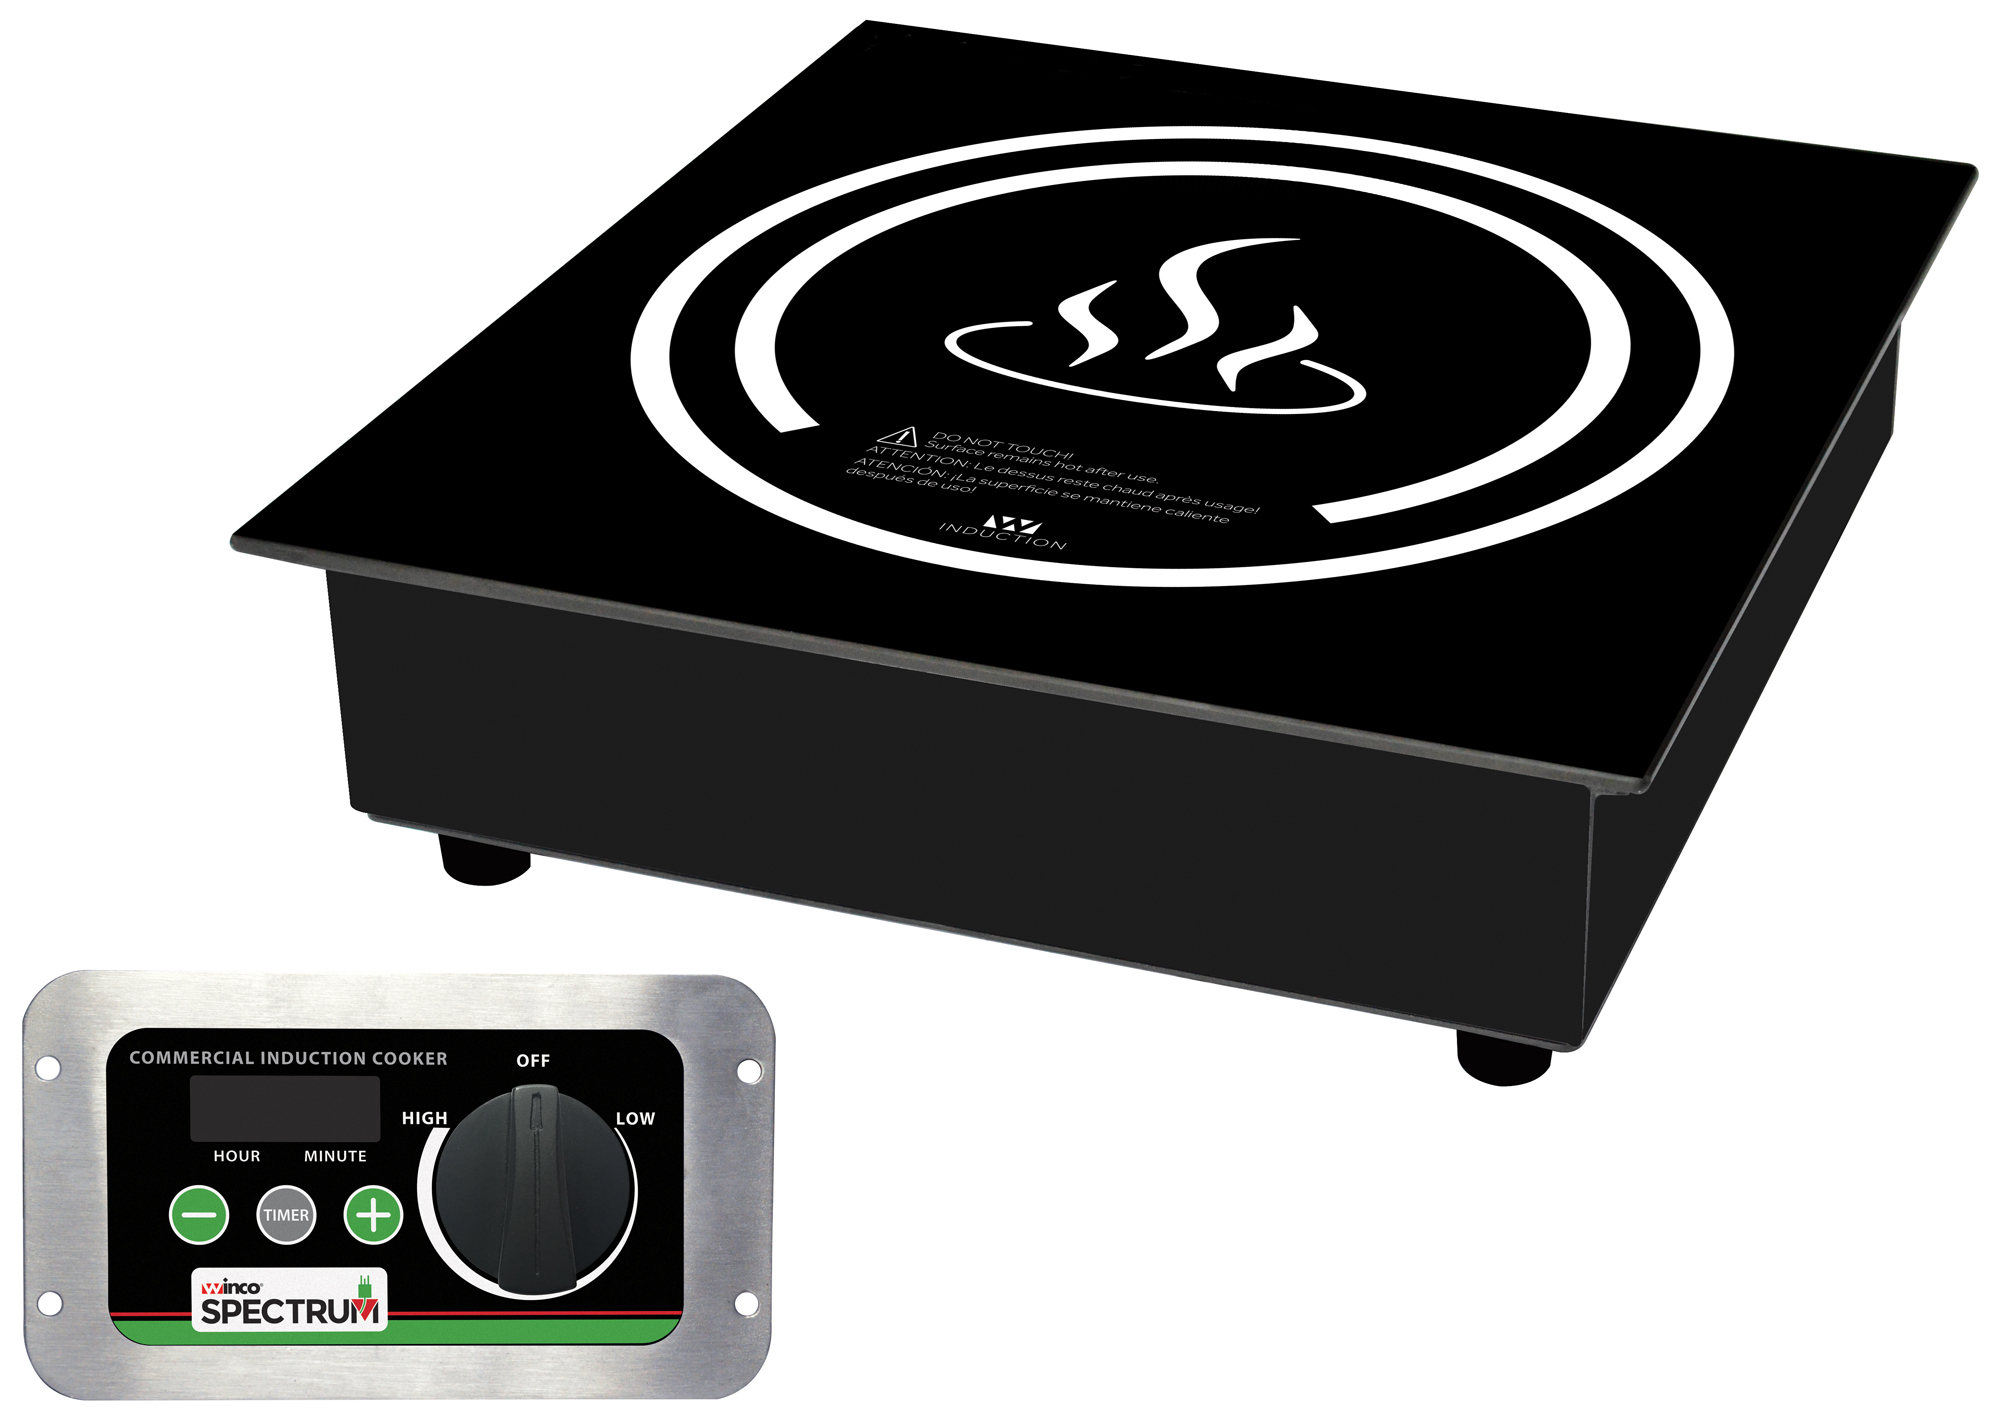 Winco EIDS-18 commercial drop-in induction cooker